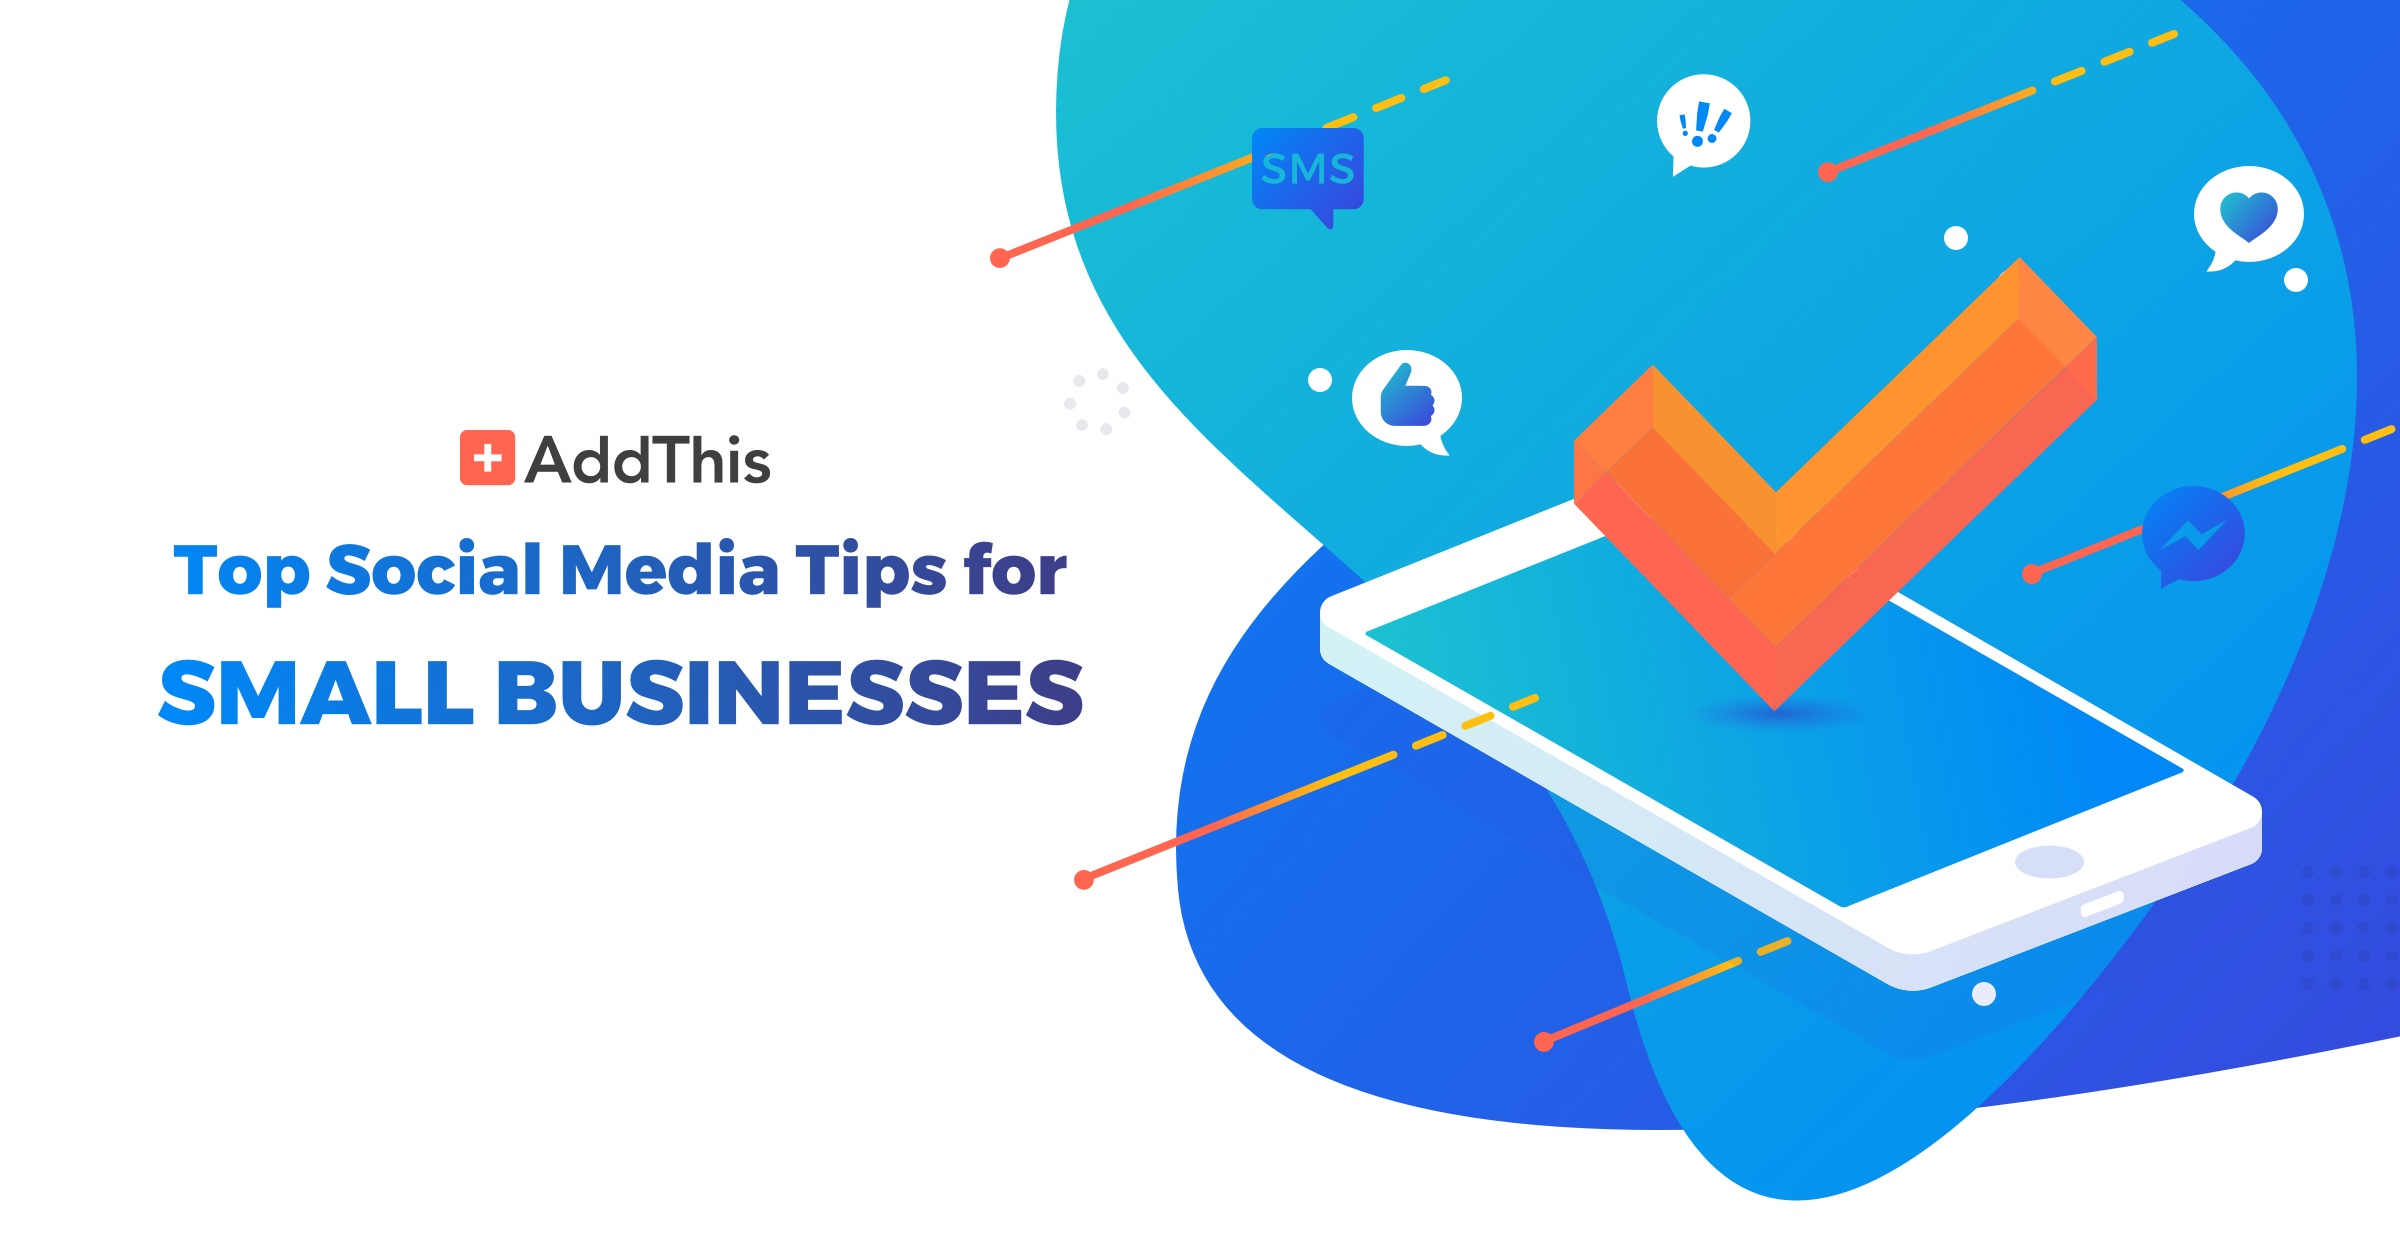 Top Social Media Tips for Small Businesses